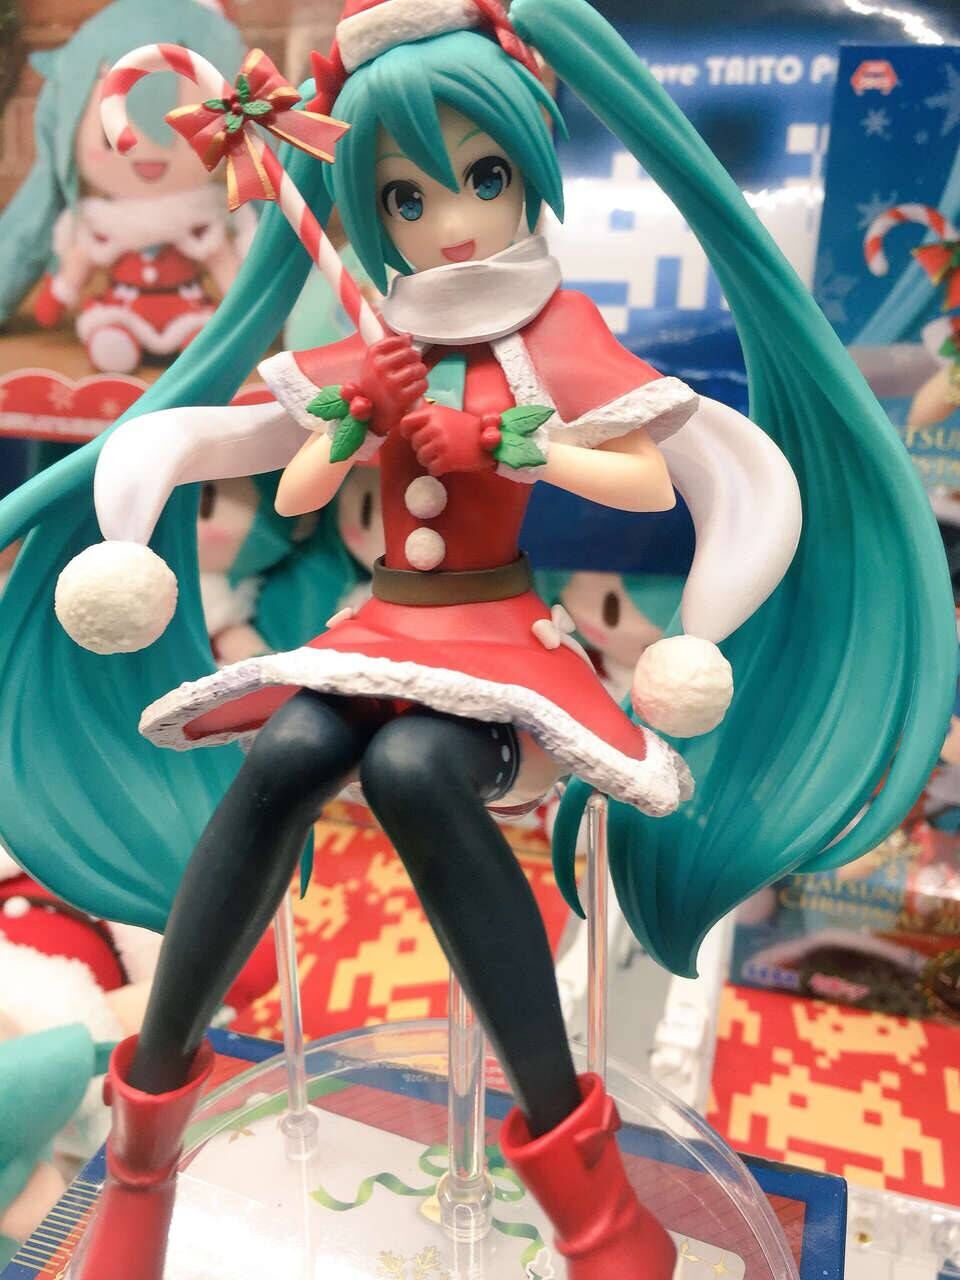 Hatsune Miku Christmas.Us 25 28 50 Off Original Japanese Anime Figure Hatsune Miku Christmas Ver Action Figure Collectible Model Toys For Boys In Action Toy Figures From